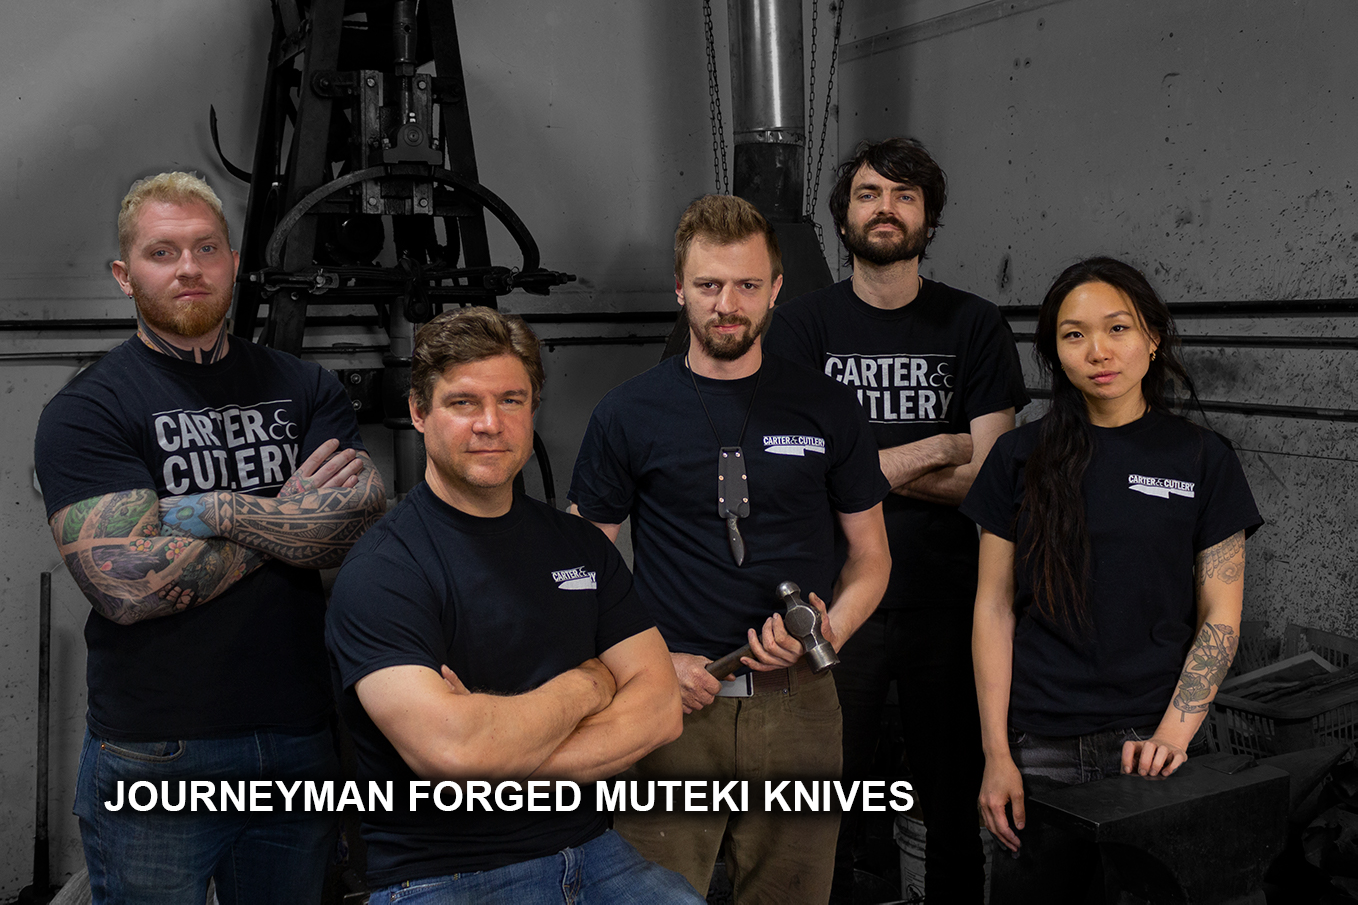 Journeyman Forged Muteki Knives